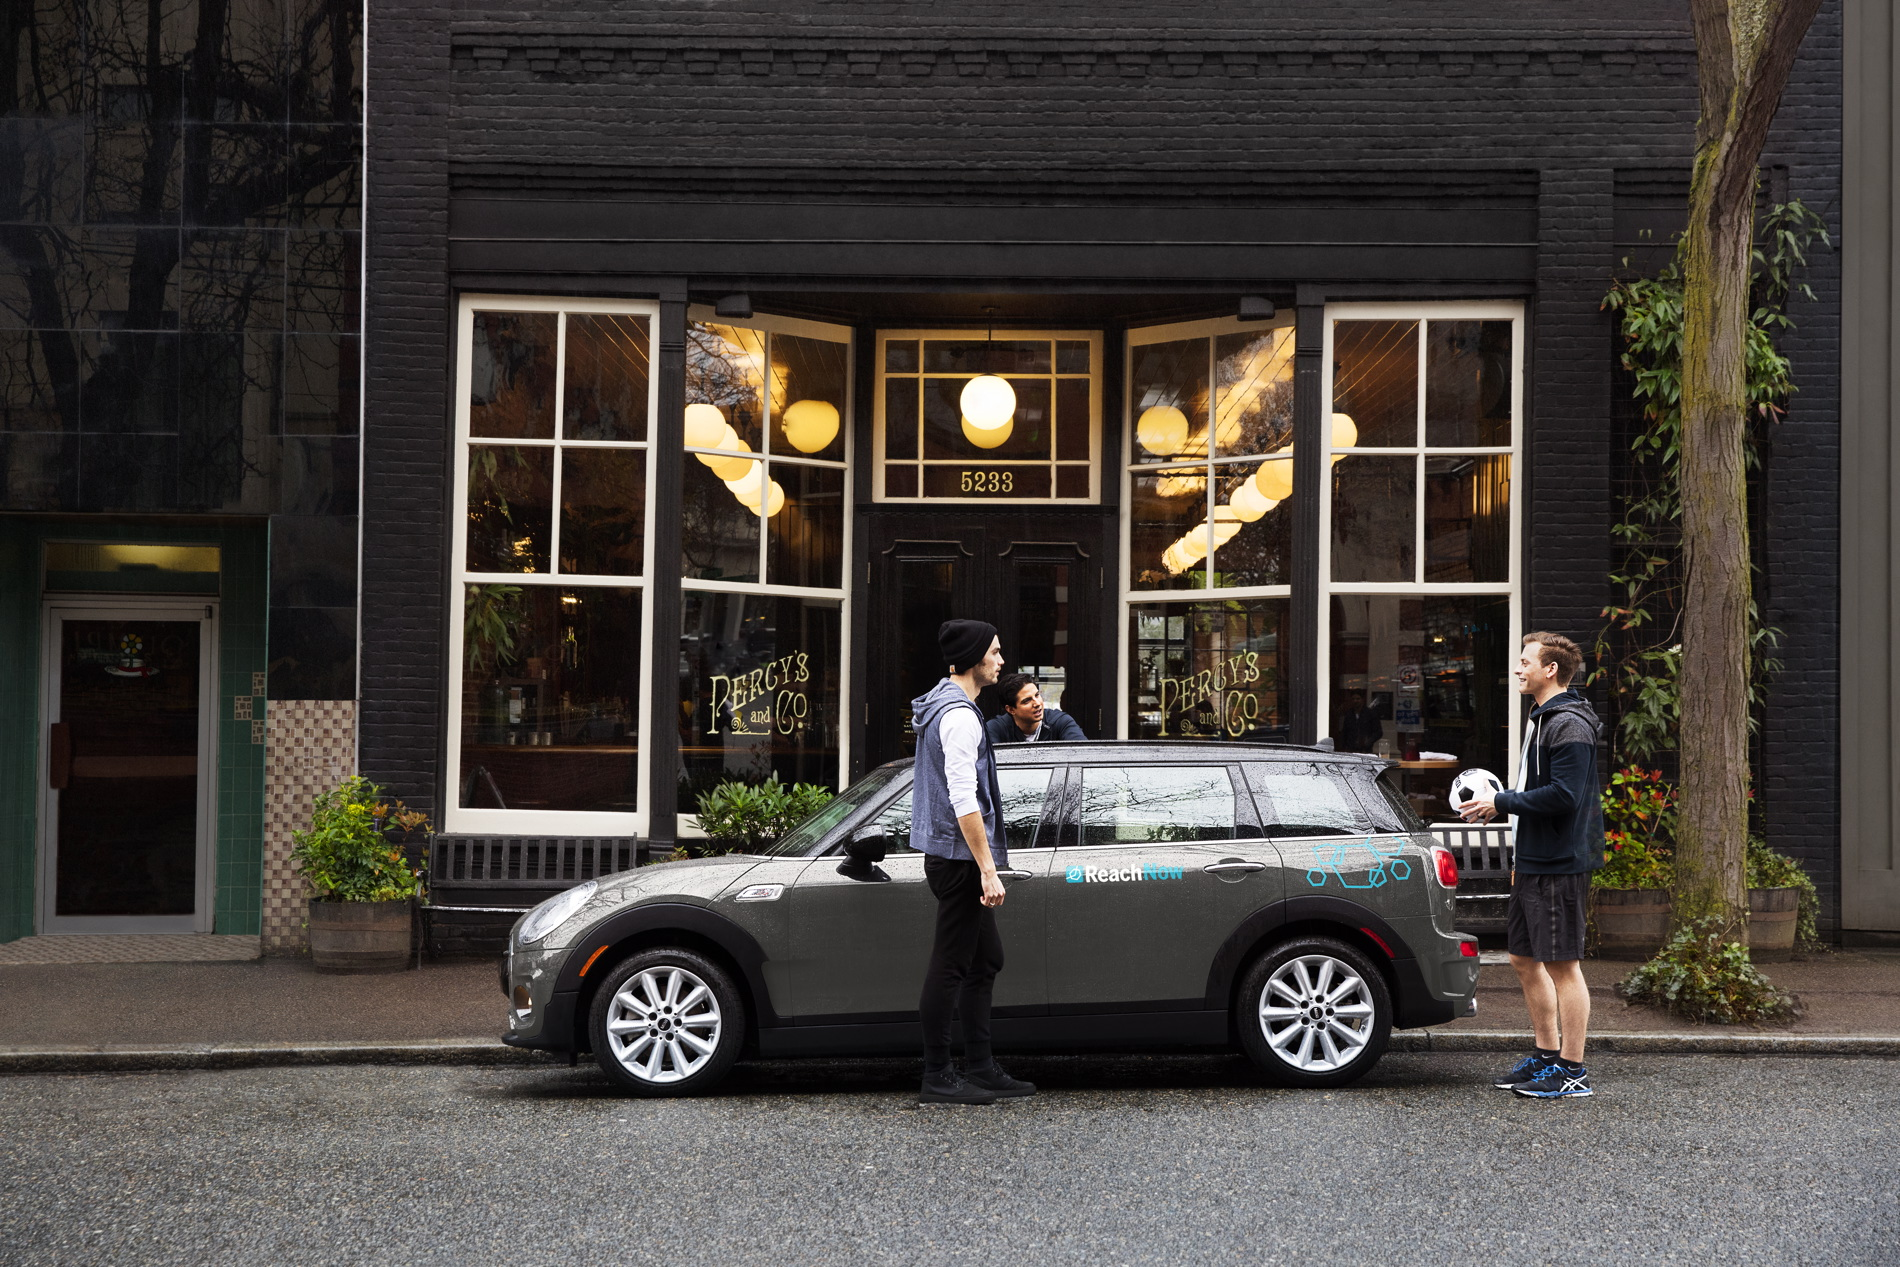 ReachNow Adds 150 More Cars and Expands to Southeast Seattle West